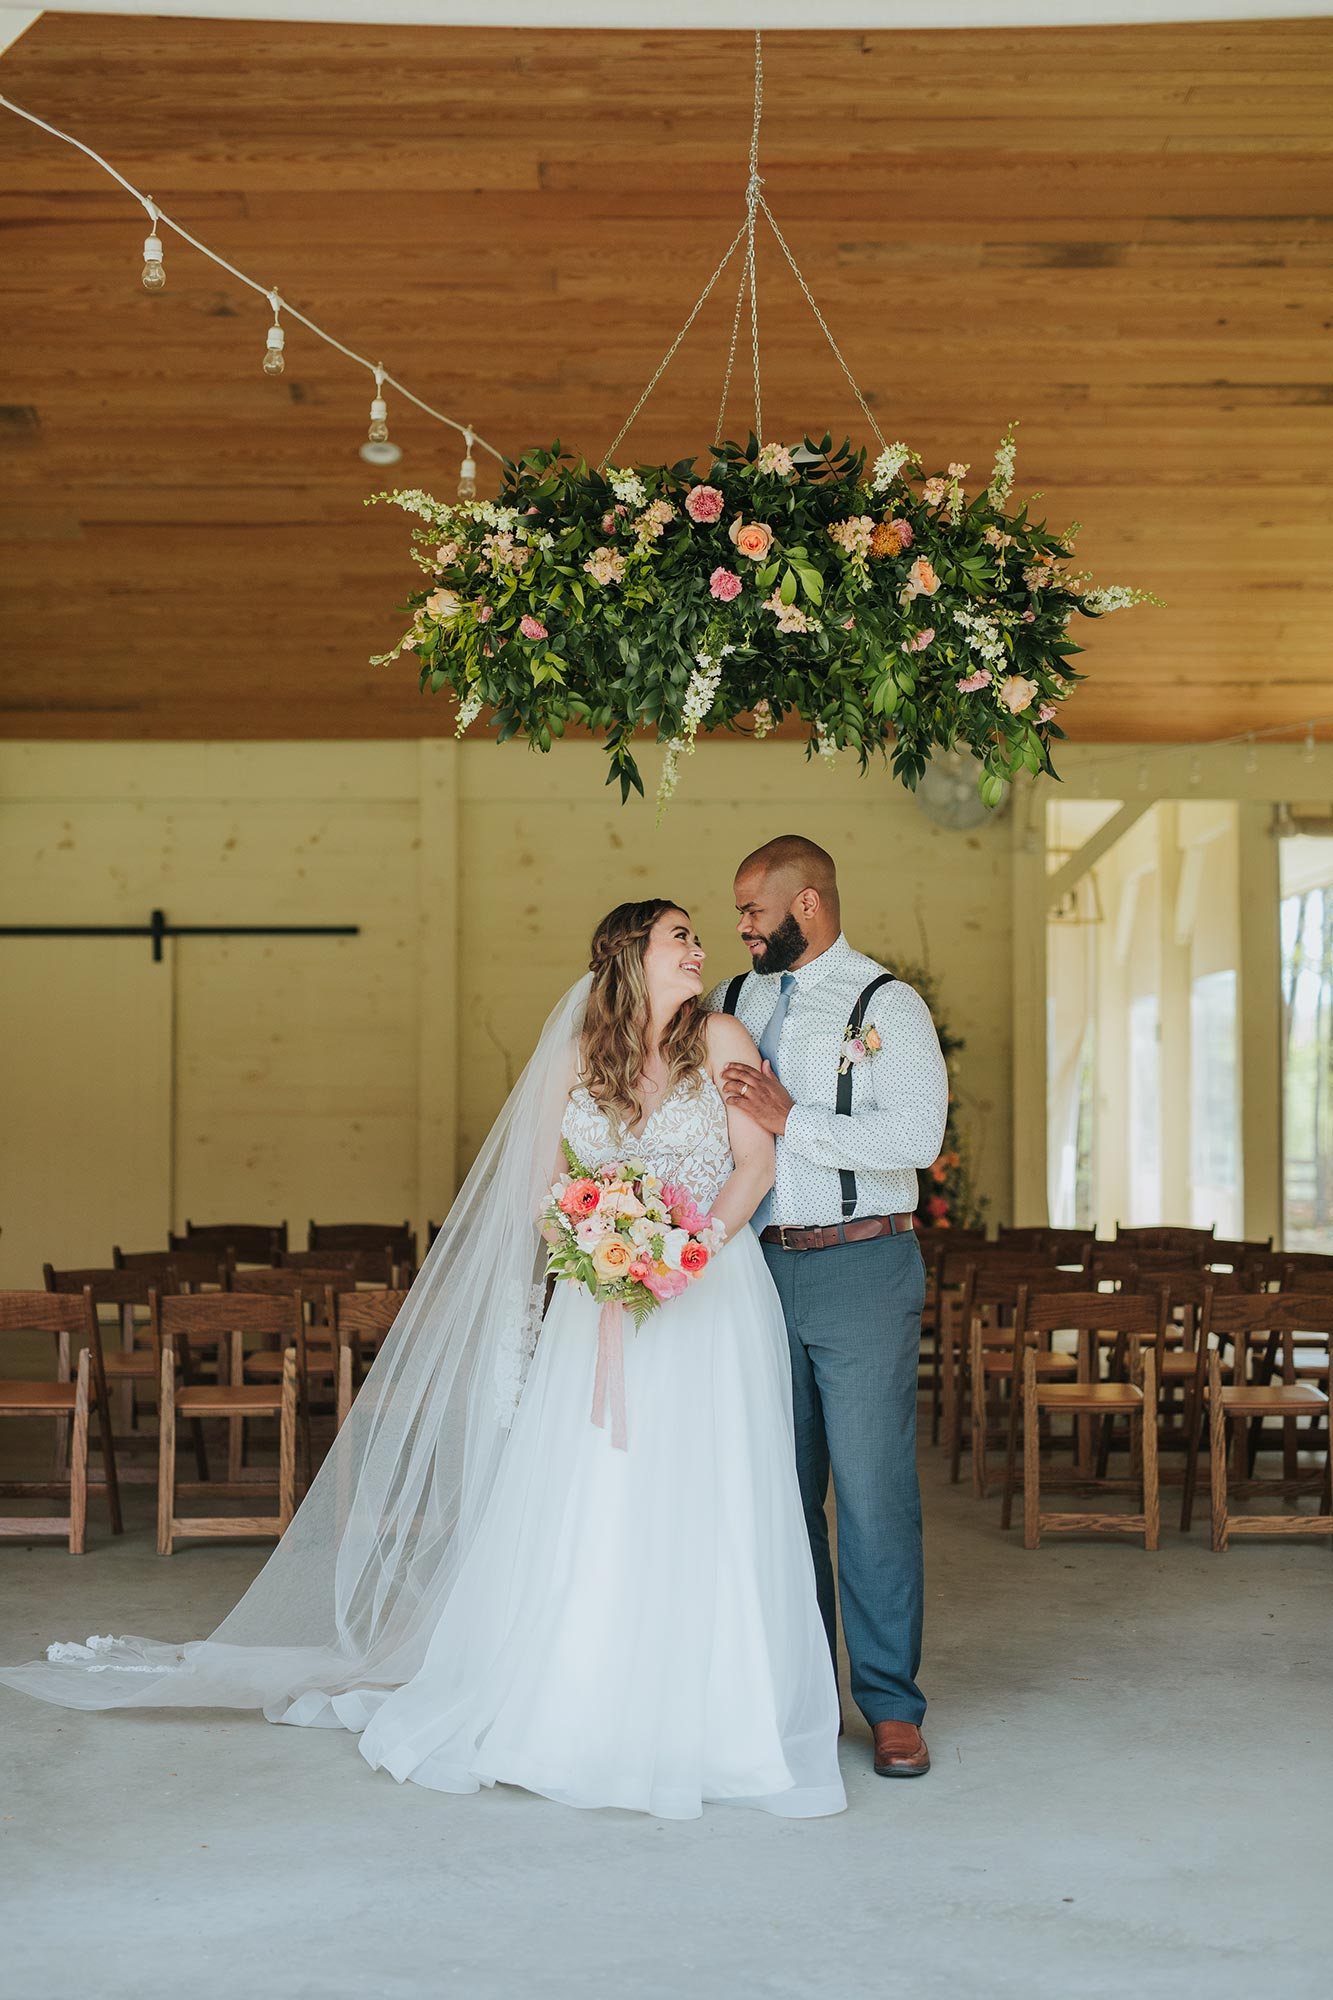 Lush wedding inspiration at Seven Springs VA with bride and groom under floral chandelier Carly Romeo & Co.